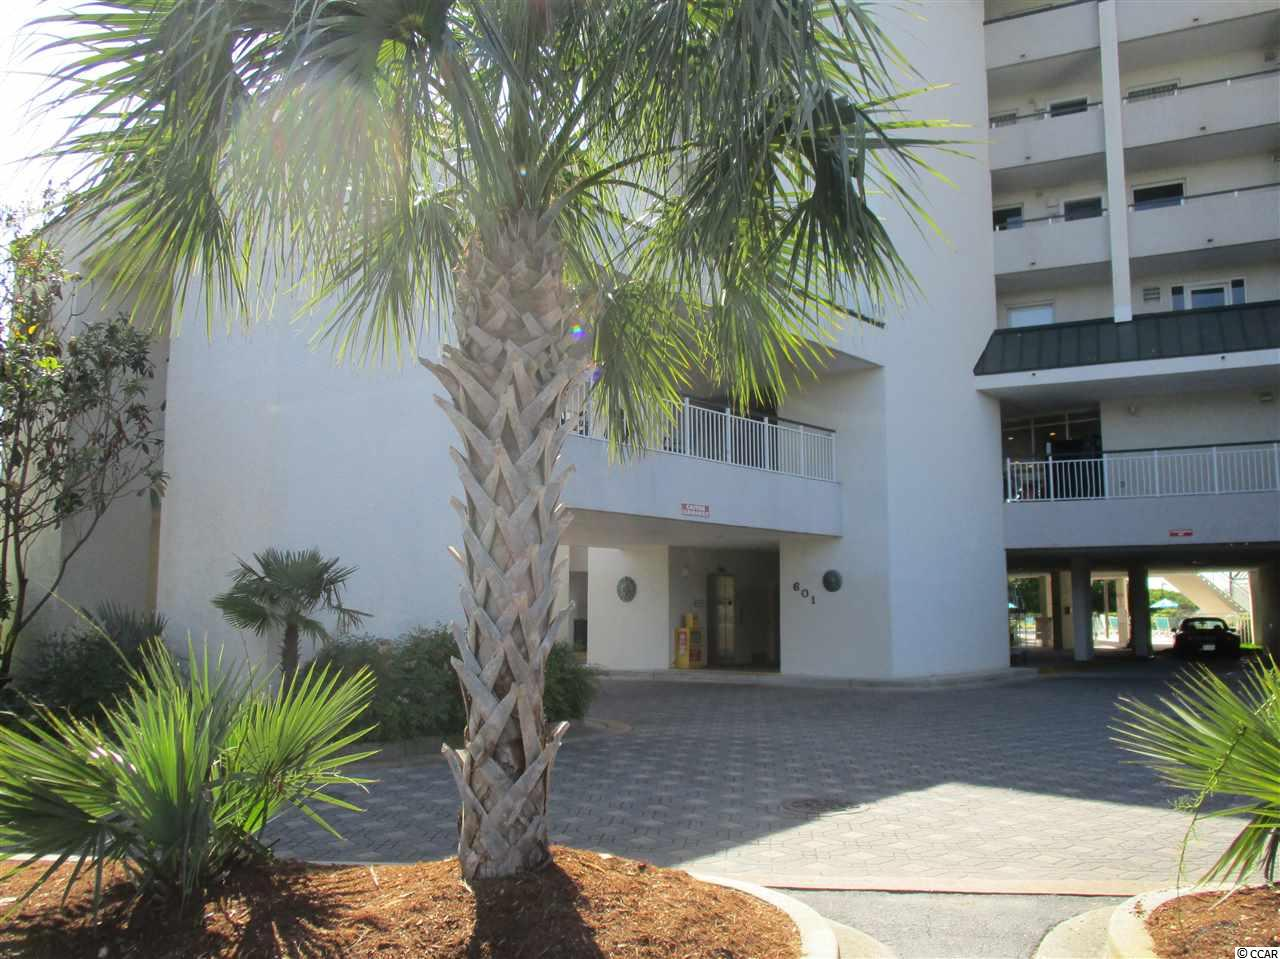 Better than new, this condo has been recently renovated with new vinyl plank flooring, paint, Plantation shutters, furniture, and draperies.  This condo has a Murphy bed for additional sleeping.  Beautiful view from balcony overlooking outside pool, lazy river, and ocean.  This building also has a large meeting area with sofas and chairs for relaxing and an indoor pool and whirlpool for off season use.  Litchfield By The Sea offers the private beach, tennis courts, fishing pier and crabbing dock for additional entertainment.  Don't miss this opportunity to have your own place at the beach.